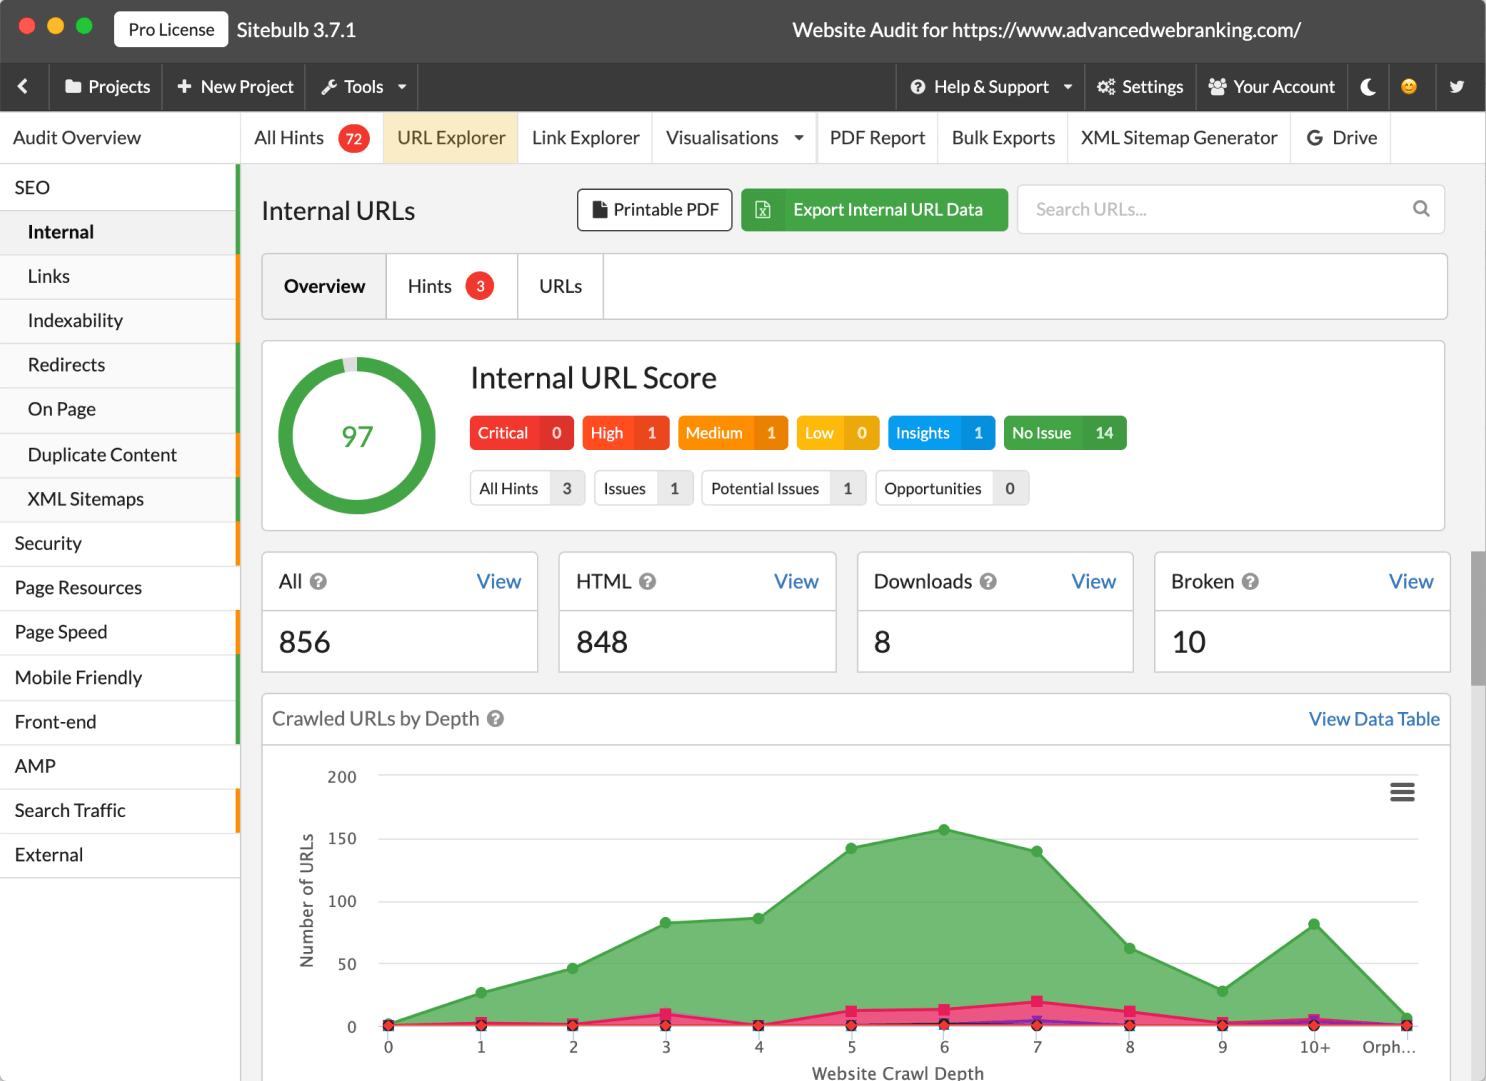 Sitebulb Internal report with URL Explorer highlighted.